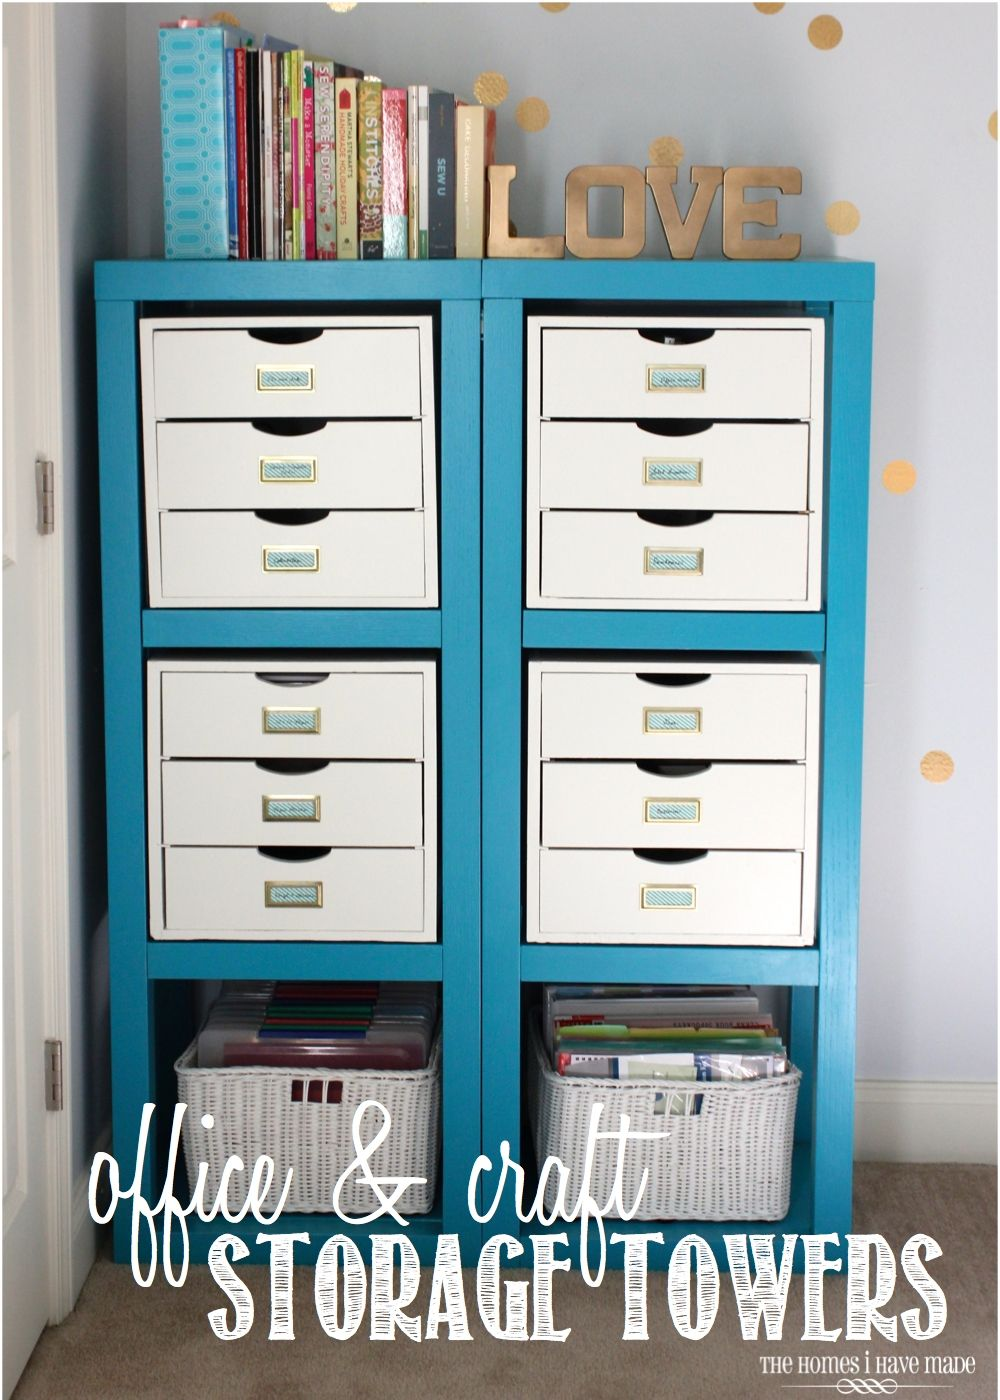 Office u craft storage towers craft storage storage and organizations